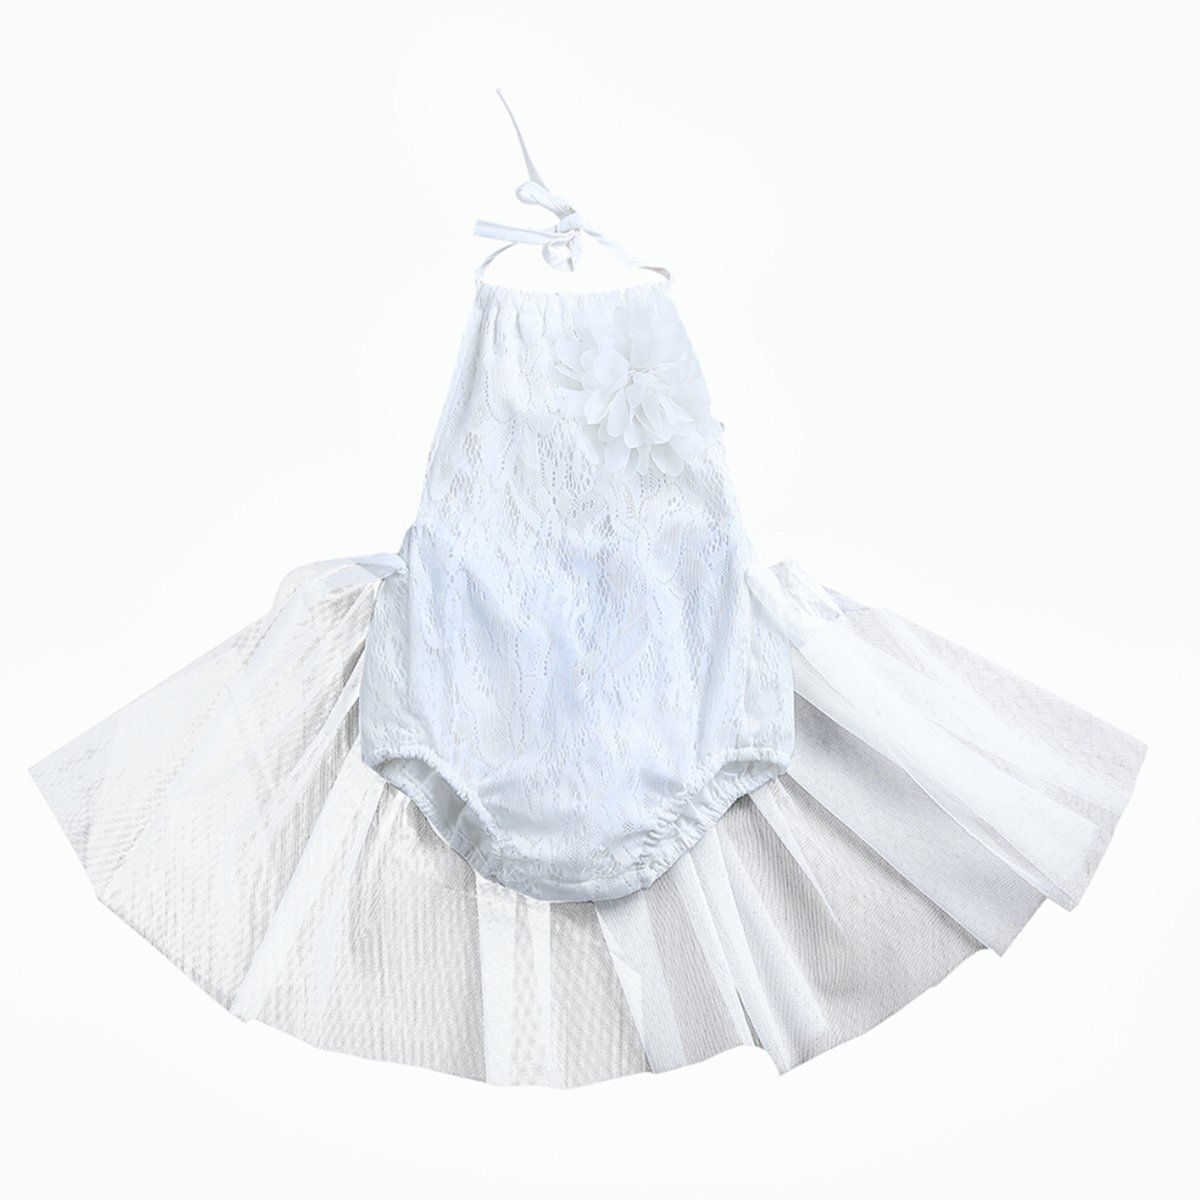 dfb41e81cf White Lace Toddler Baby Girls Sleeveless Tulle Halter Romper Jumpsuit  Clothes